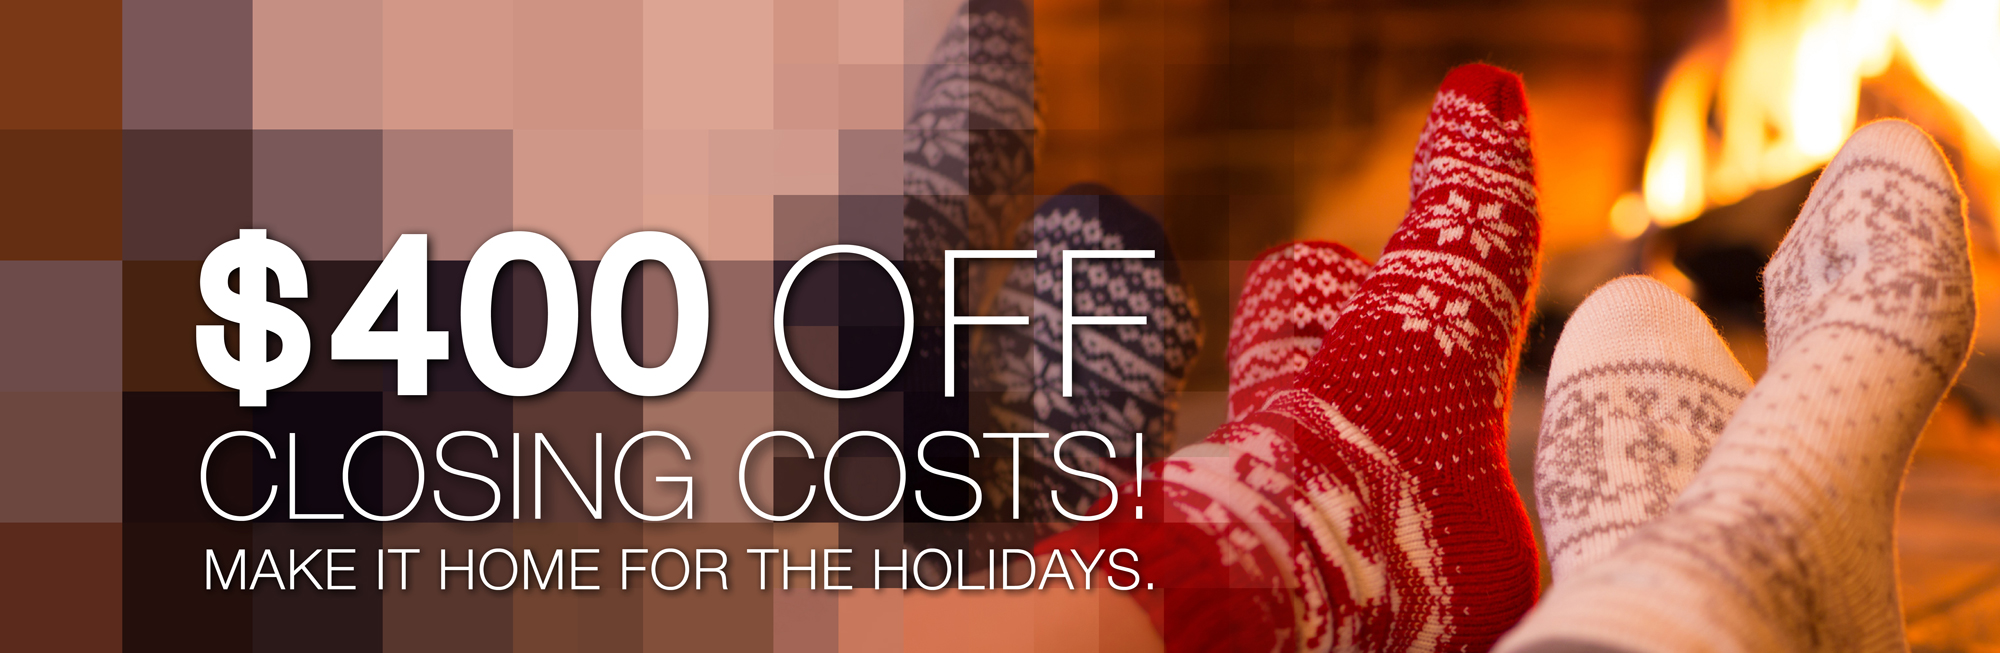 $400 off closing costs! Make it home for the holidays!